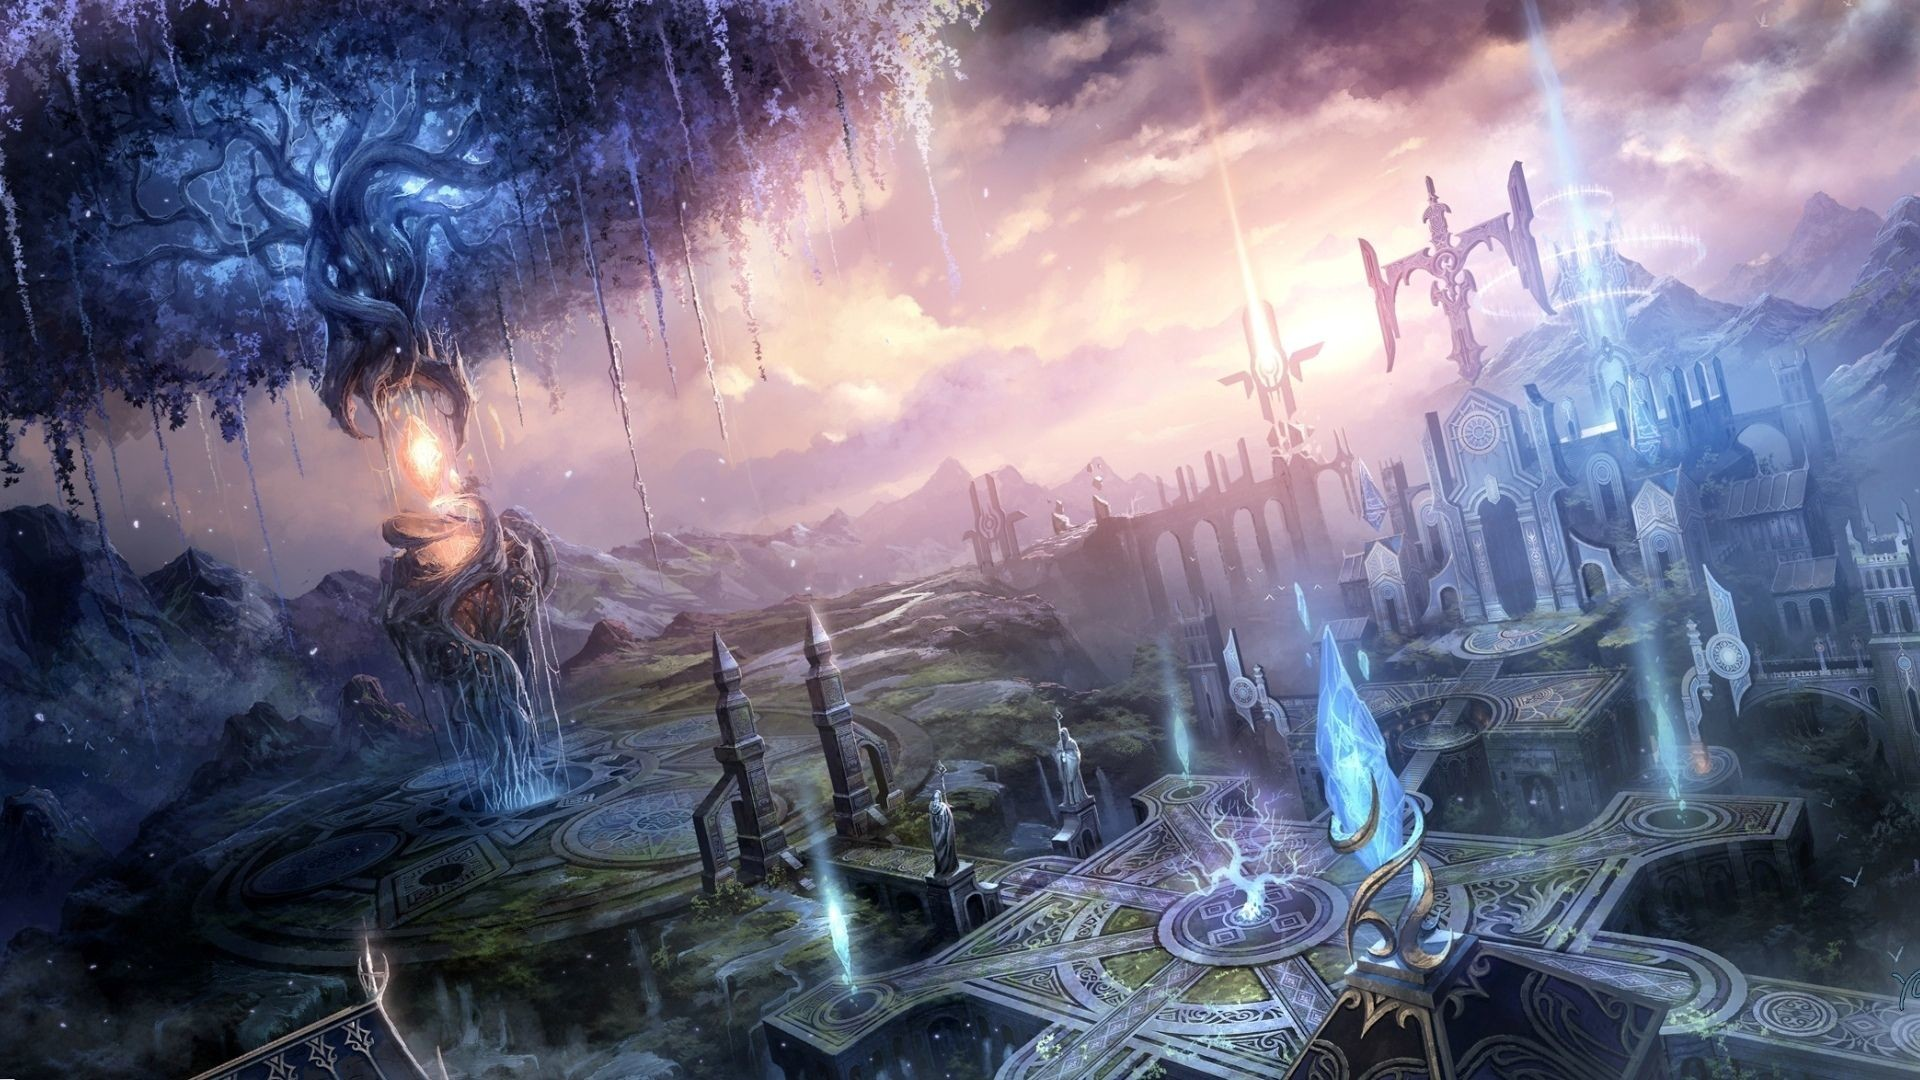 Fantasy Landscape Wallpapers 1920x1080 84 Background Pictures